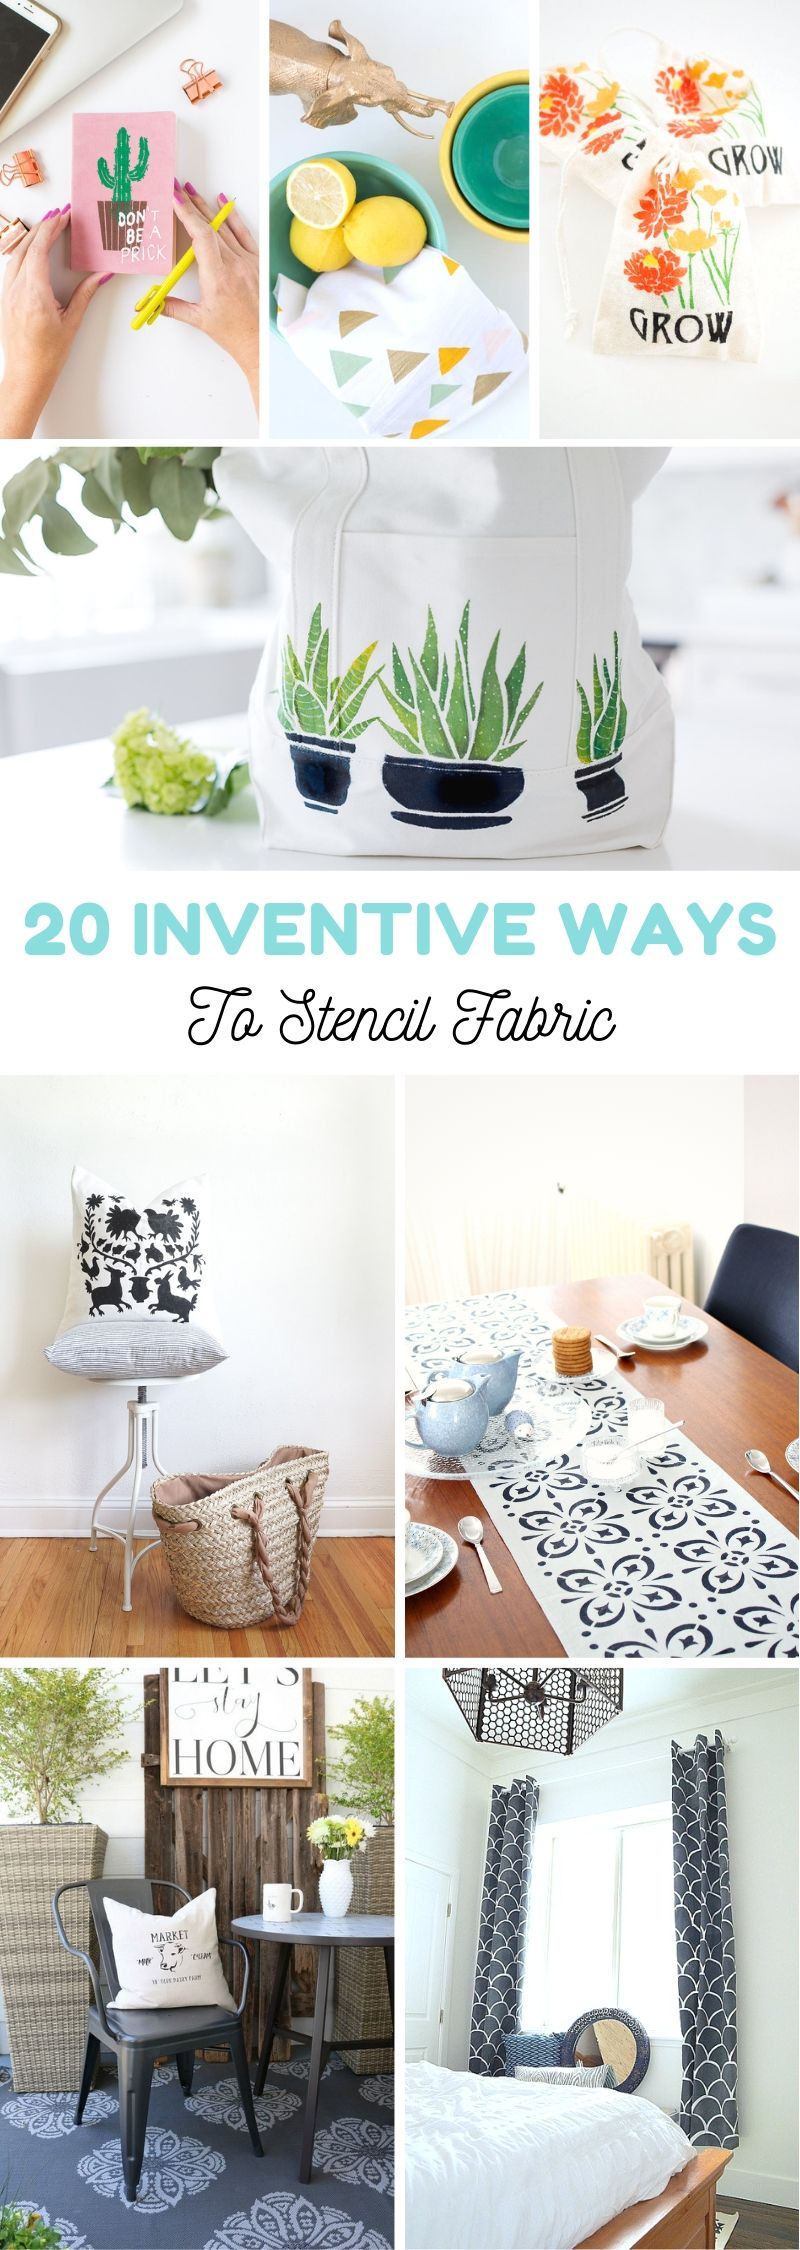 Ways To Stencil Fabric